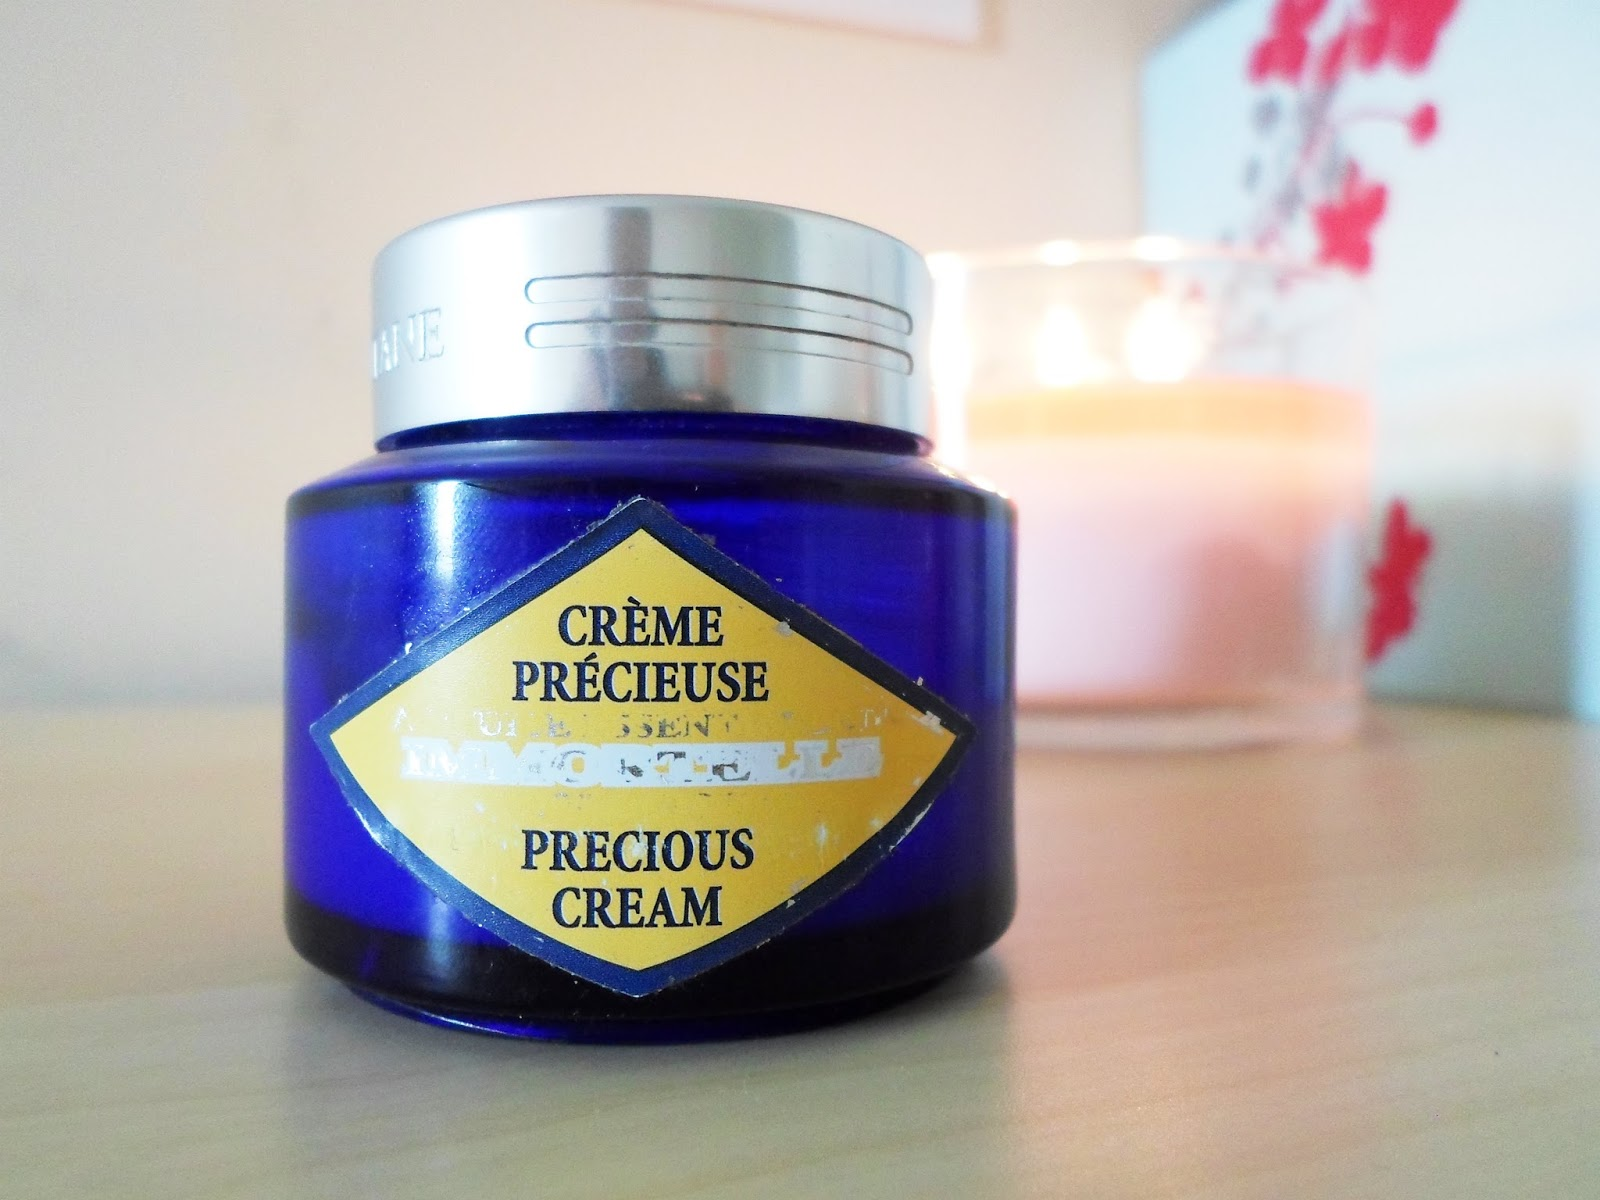 L'occitane immortelle precious cream review thebeautytype.com beauty blogger student blogger